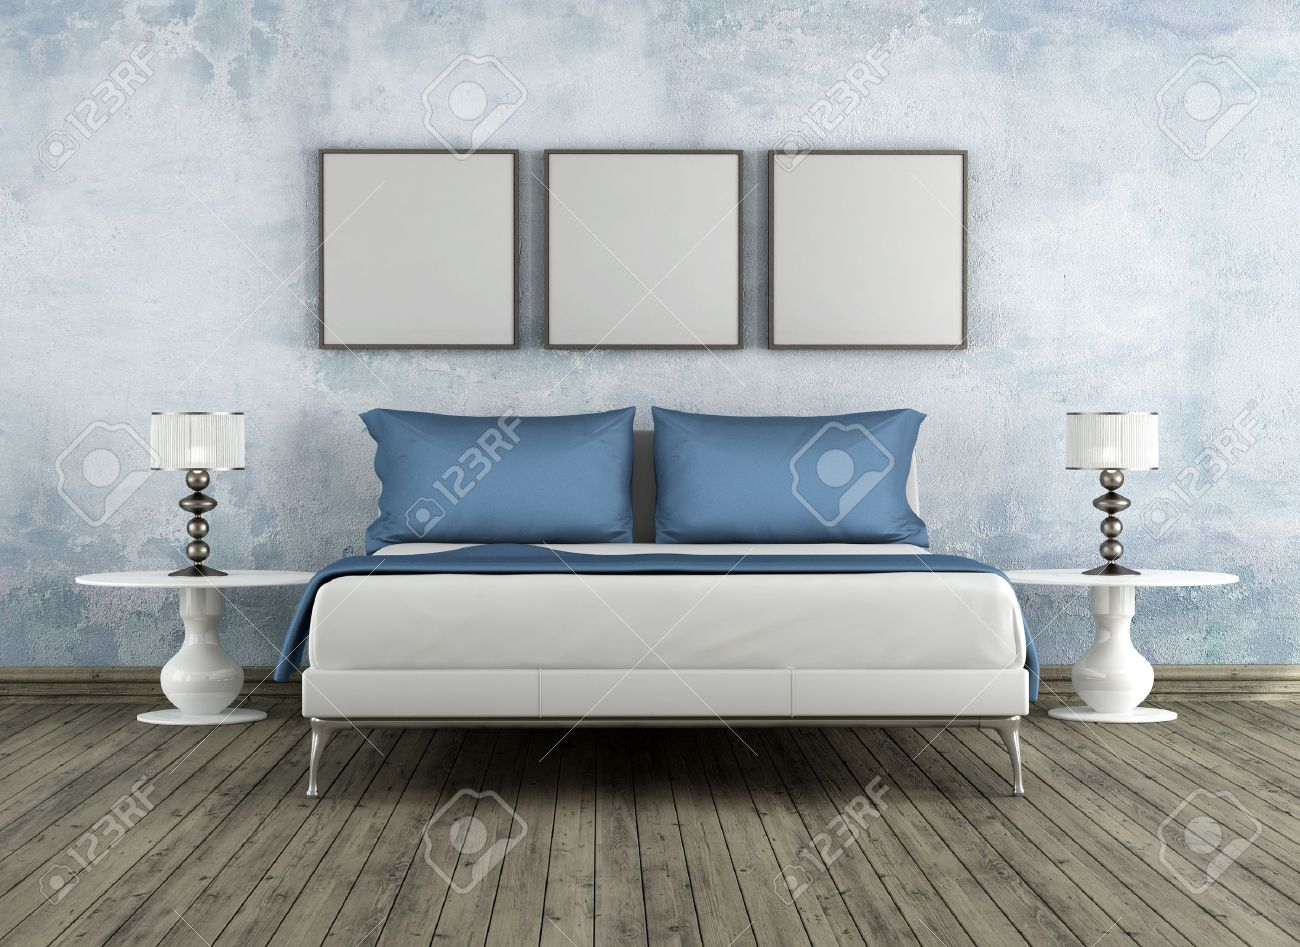 Charming Modern Bad In A Vintage Room   Rendering Stock Photo   15356318